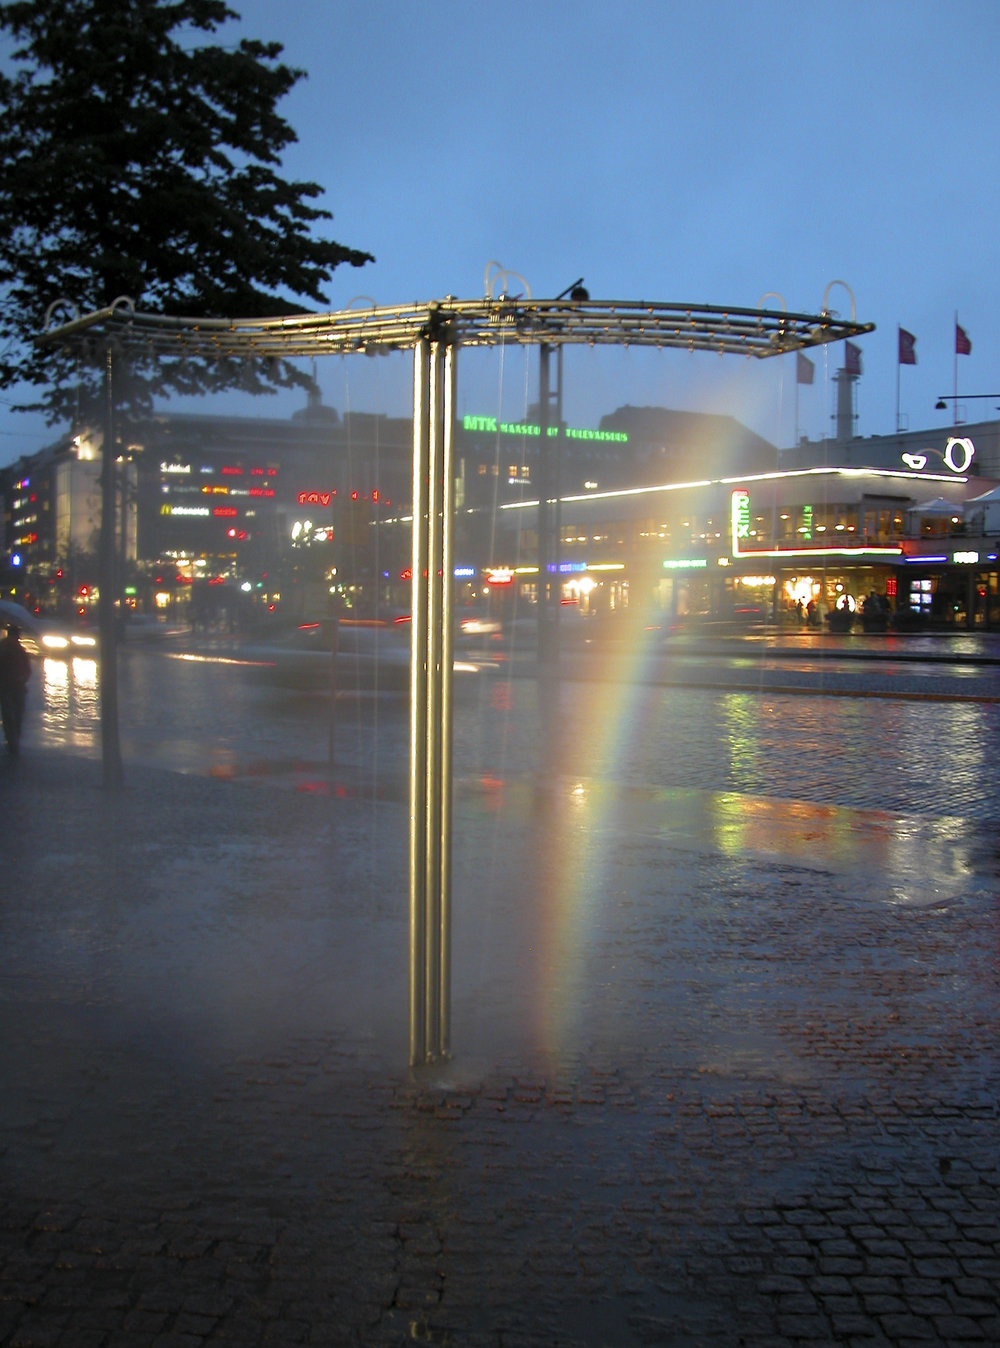 4 RAINBOWS 2  Light Rain Vert Night.jpg